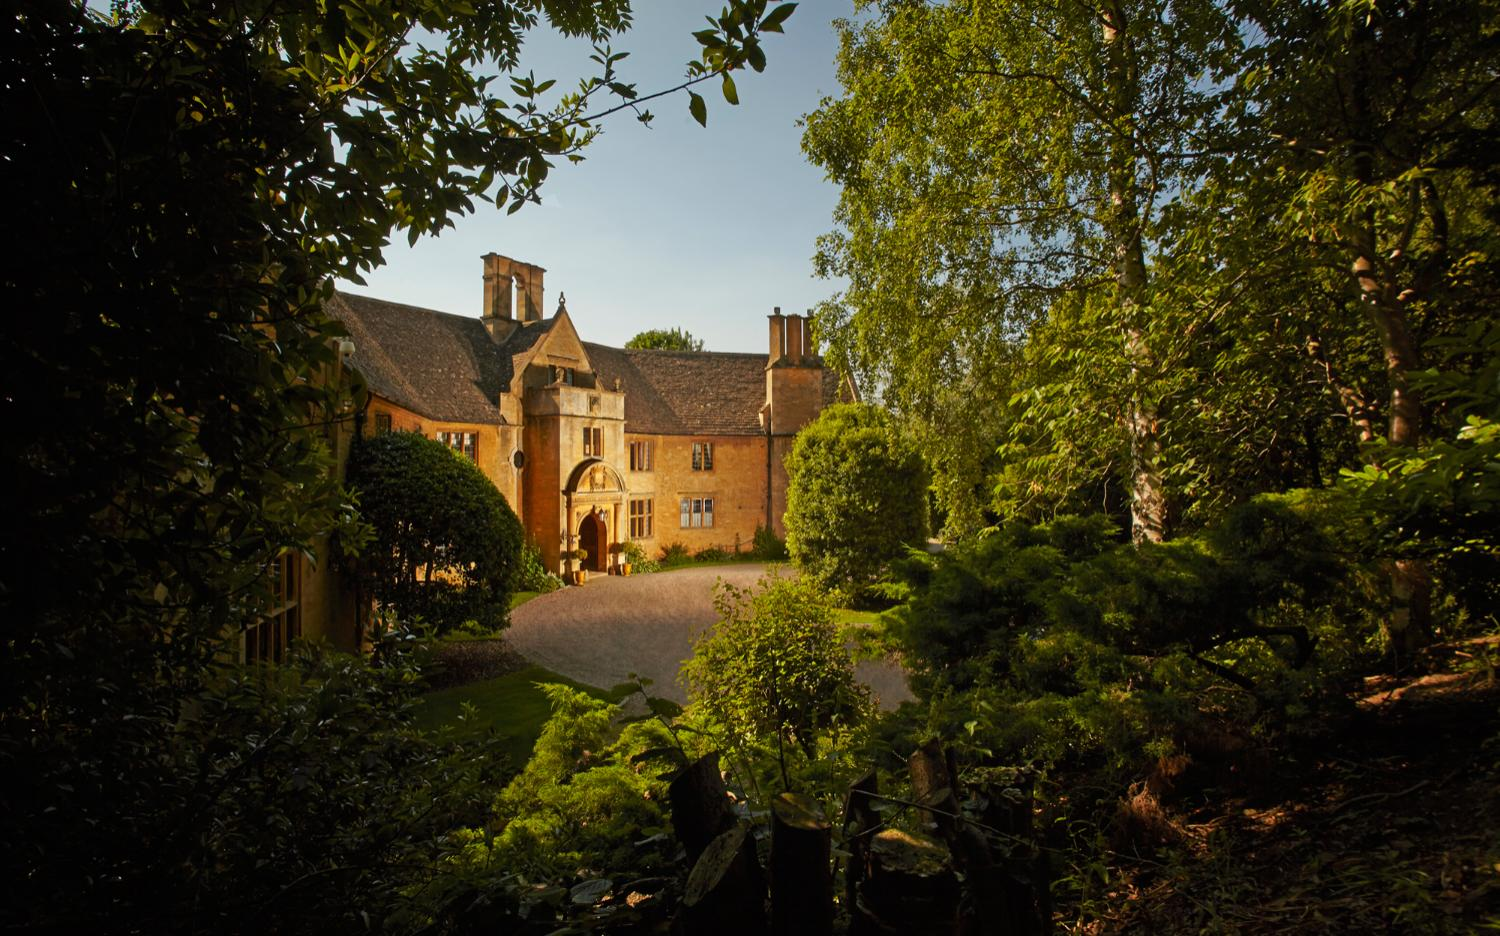 foxhill-manor-cotswolds-exterior-xxlarge.jpg